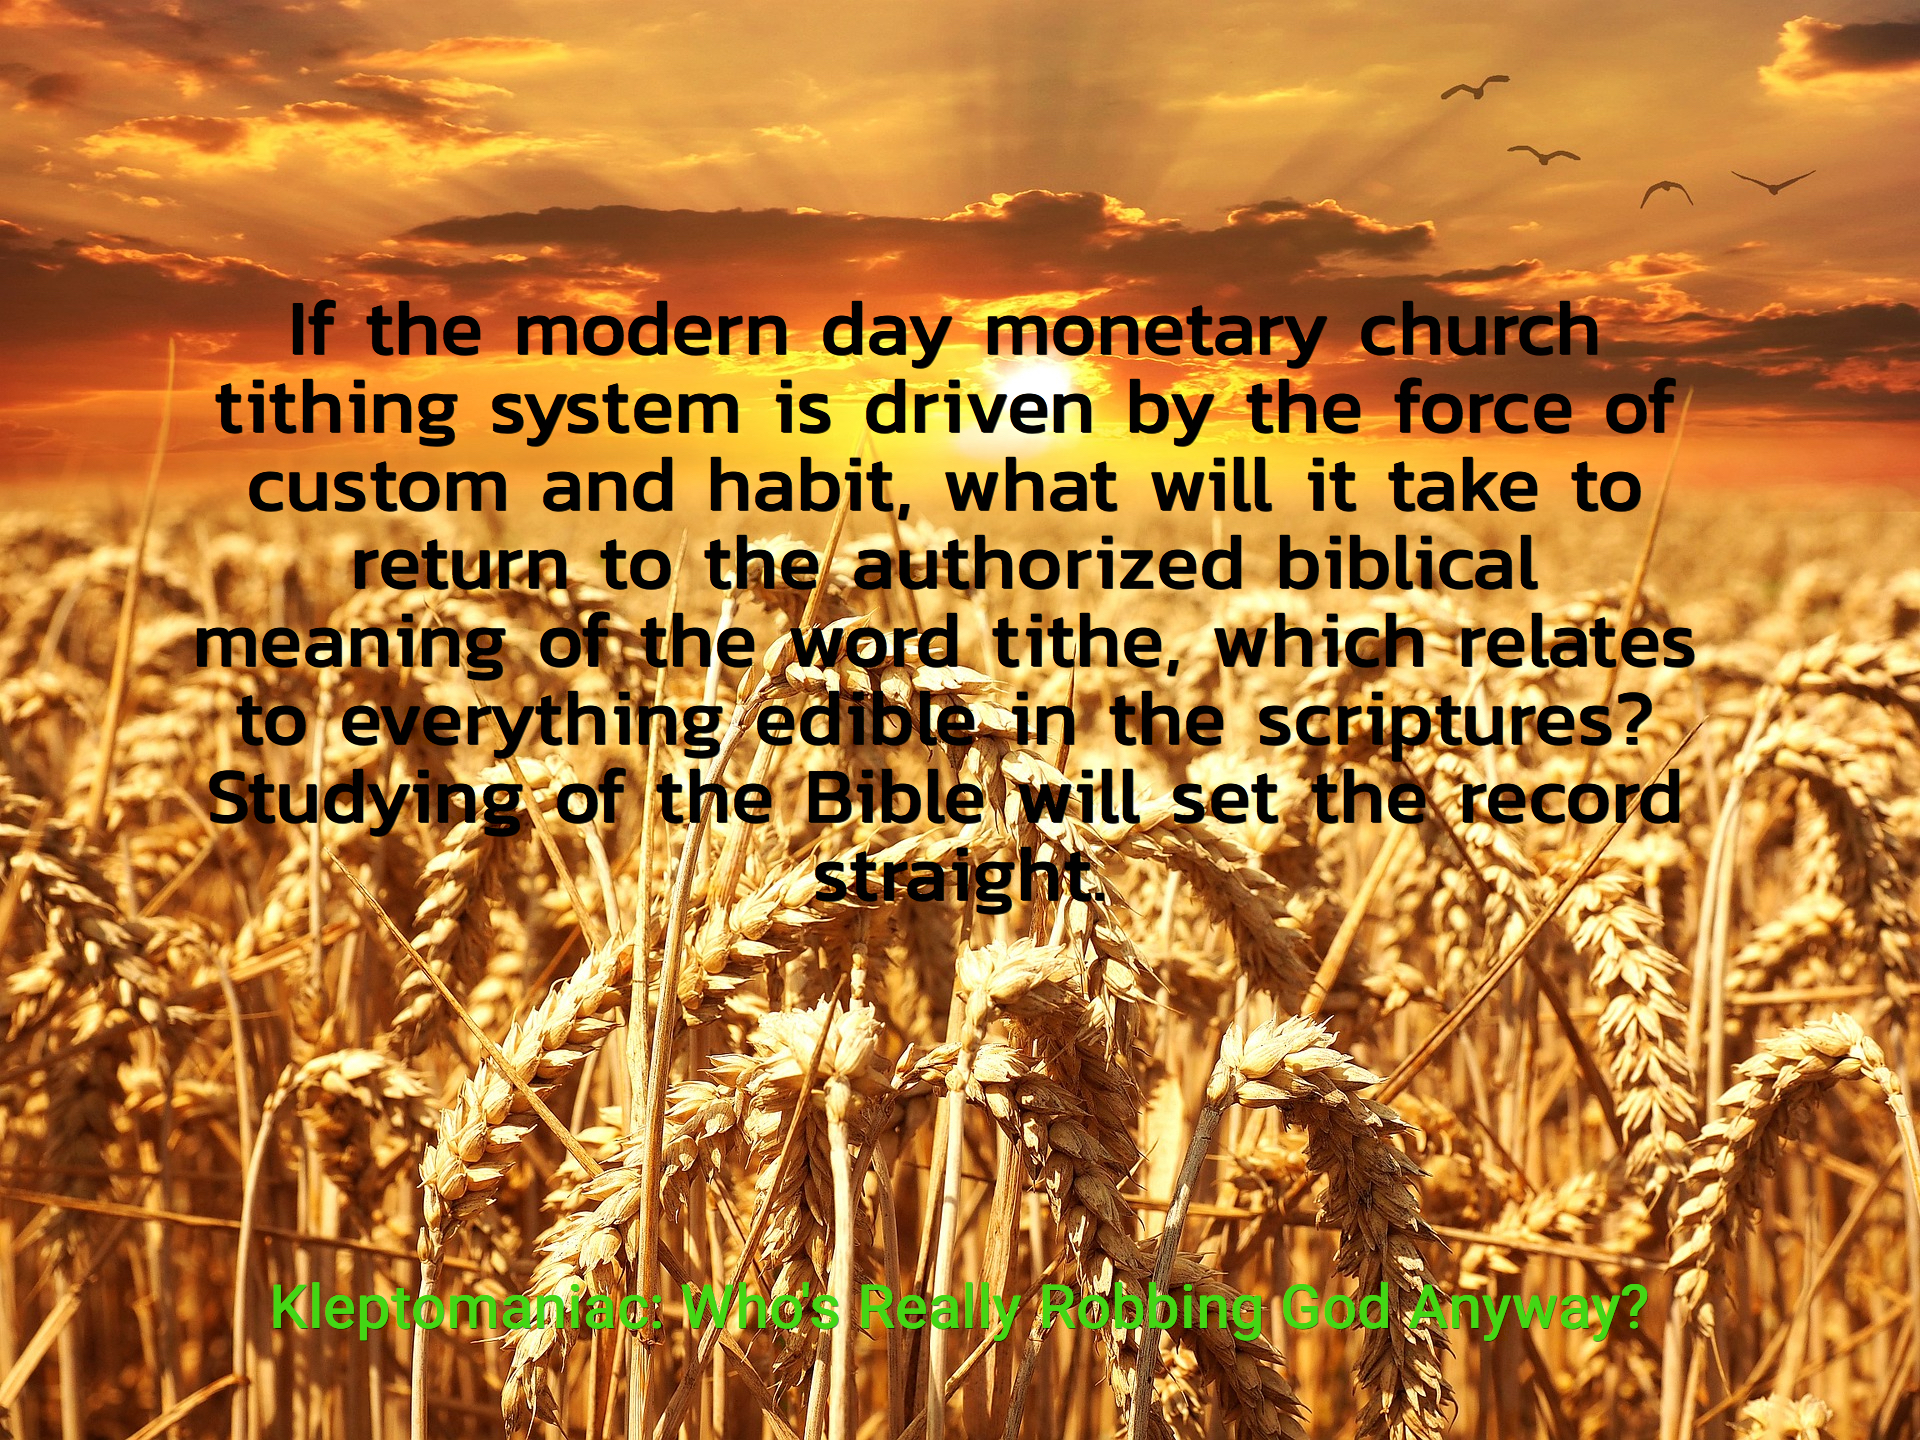 if the modern day monetary church tithing system is driven by the force of custom and...